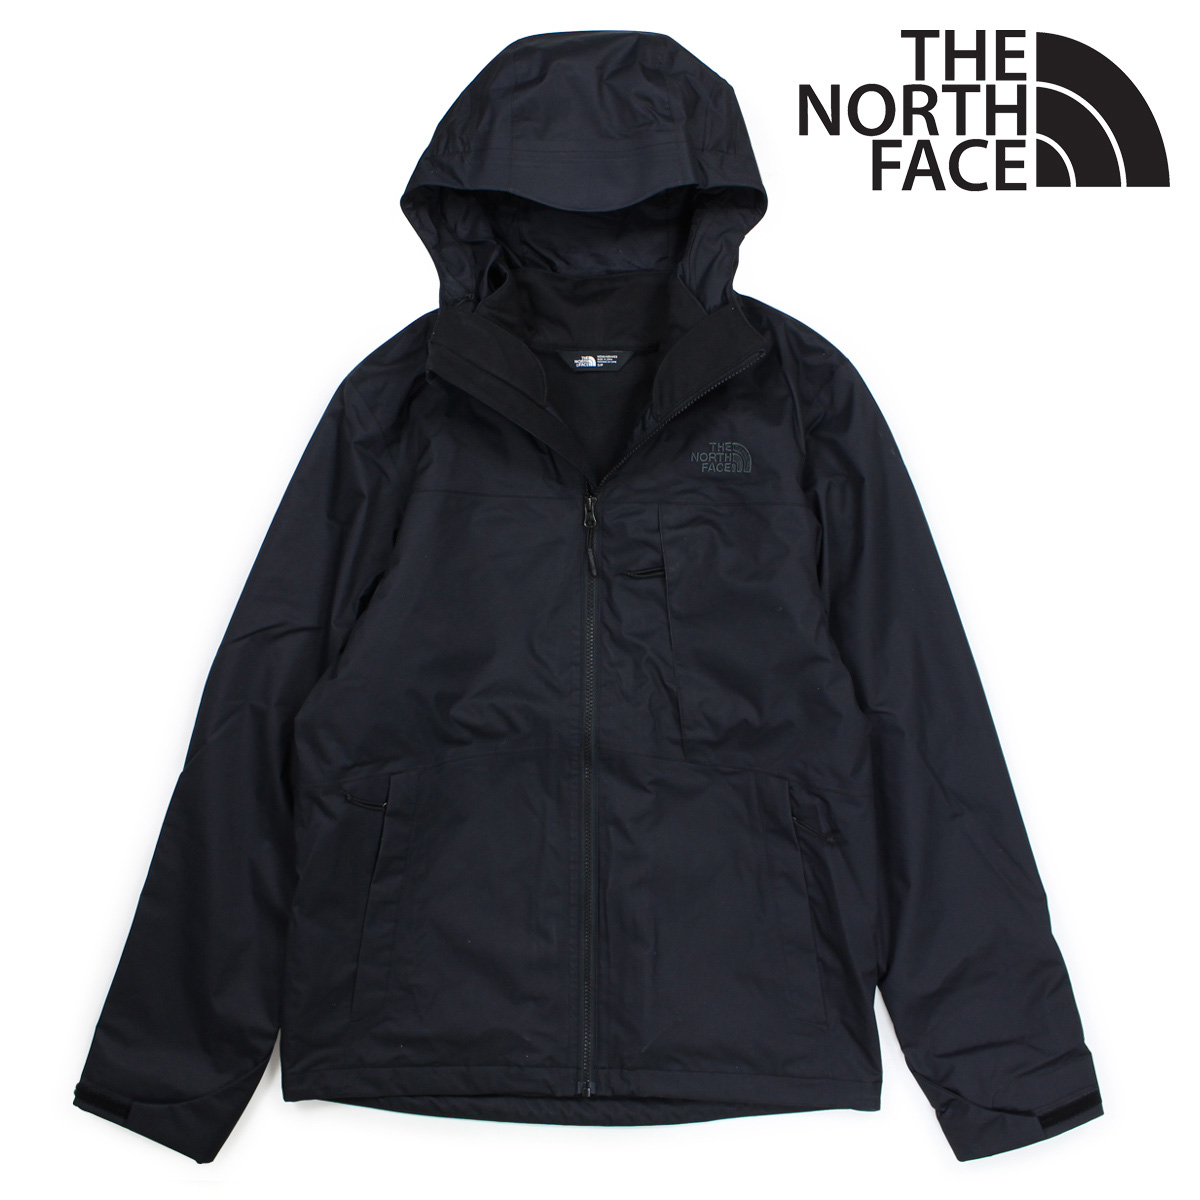 78619f40b THE NORTH FACE MENS ARROWOOD TRICLIMATE JACKET North Face jacket mountain  parka men black NF0A2TCN [3/8 Shinnyu load] [183]